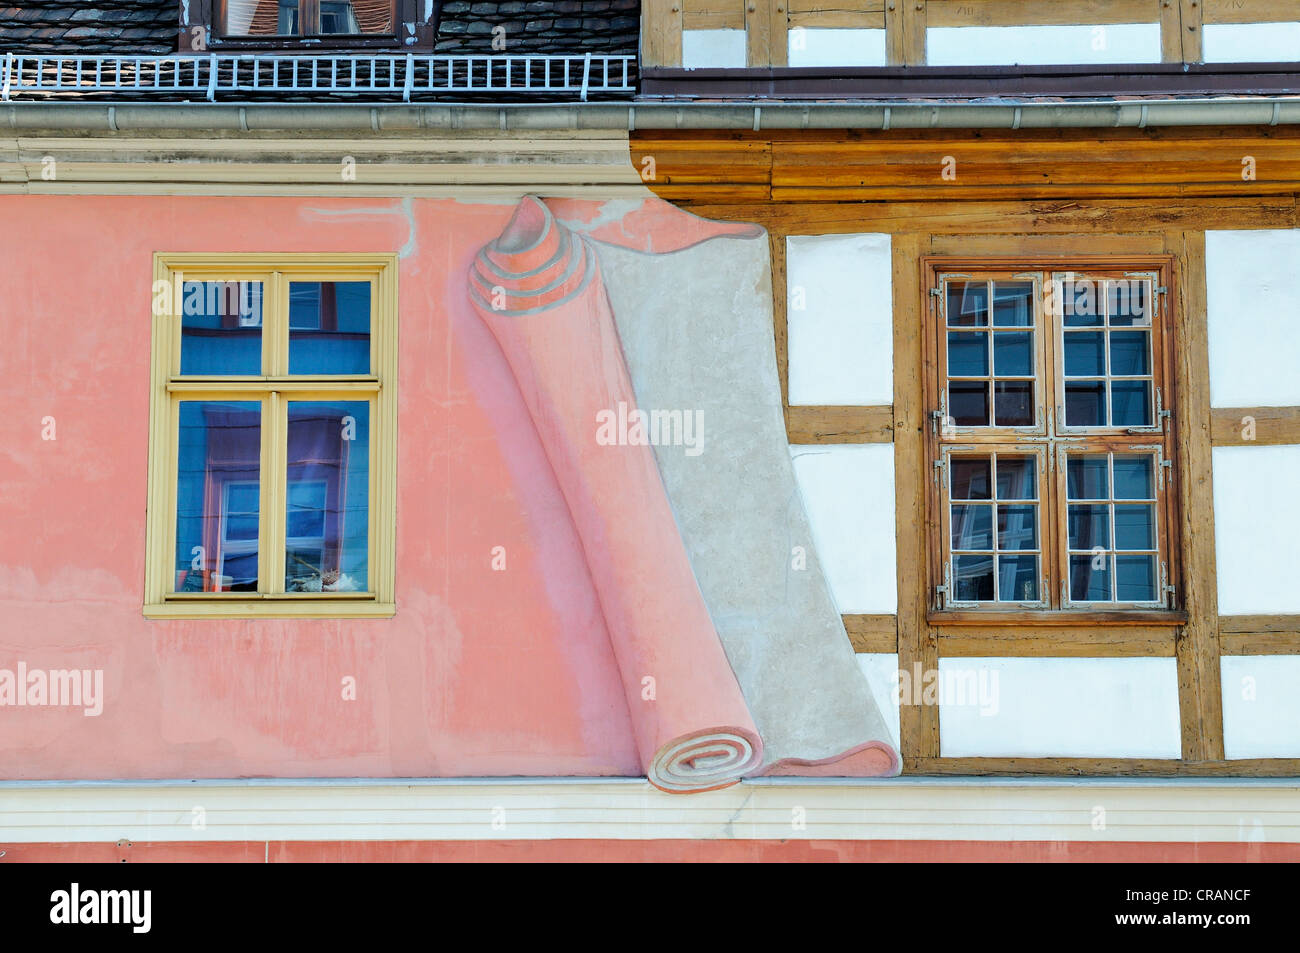 Artistic illustration of a wall being removed to expose a half-timbered facade, Potsdam, Brandenburg, Germany, Europe - Stock Image